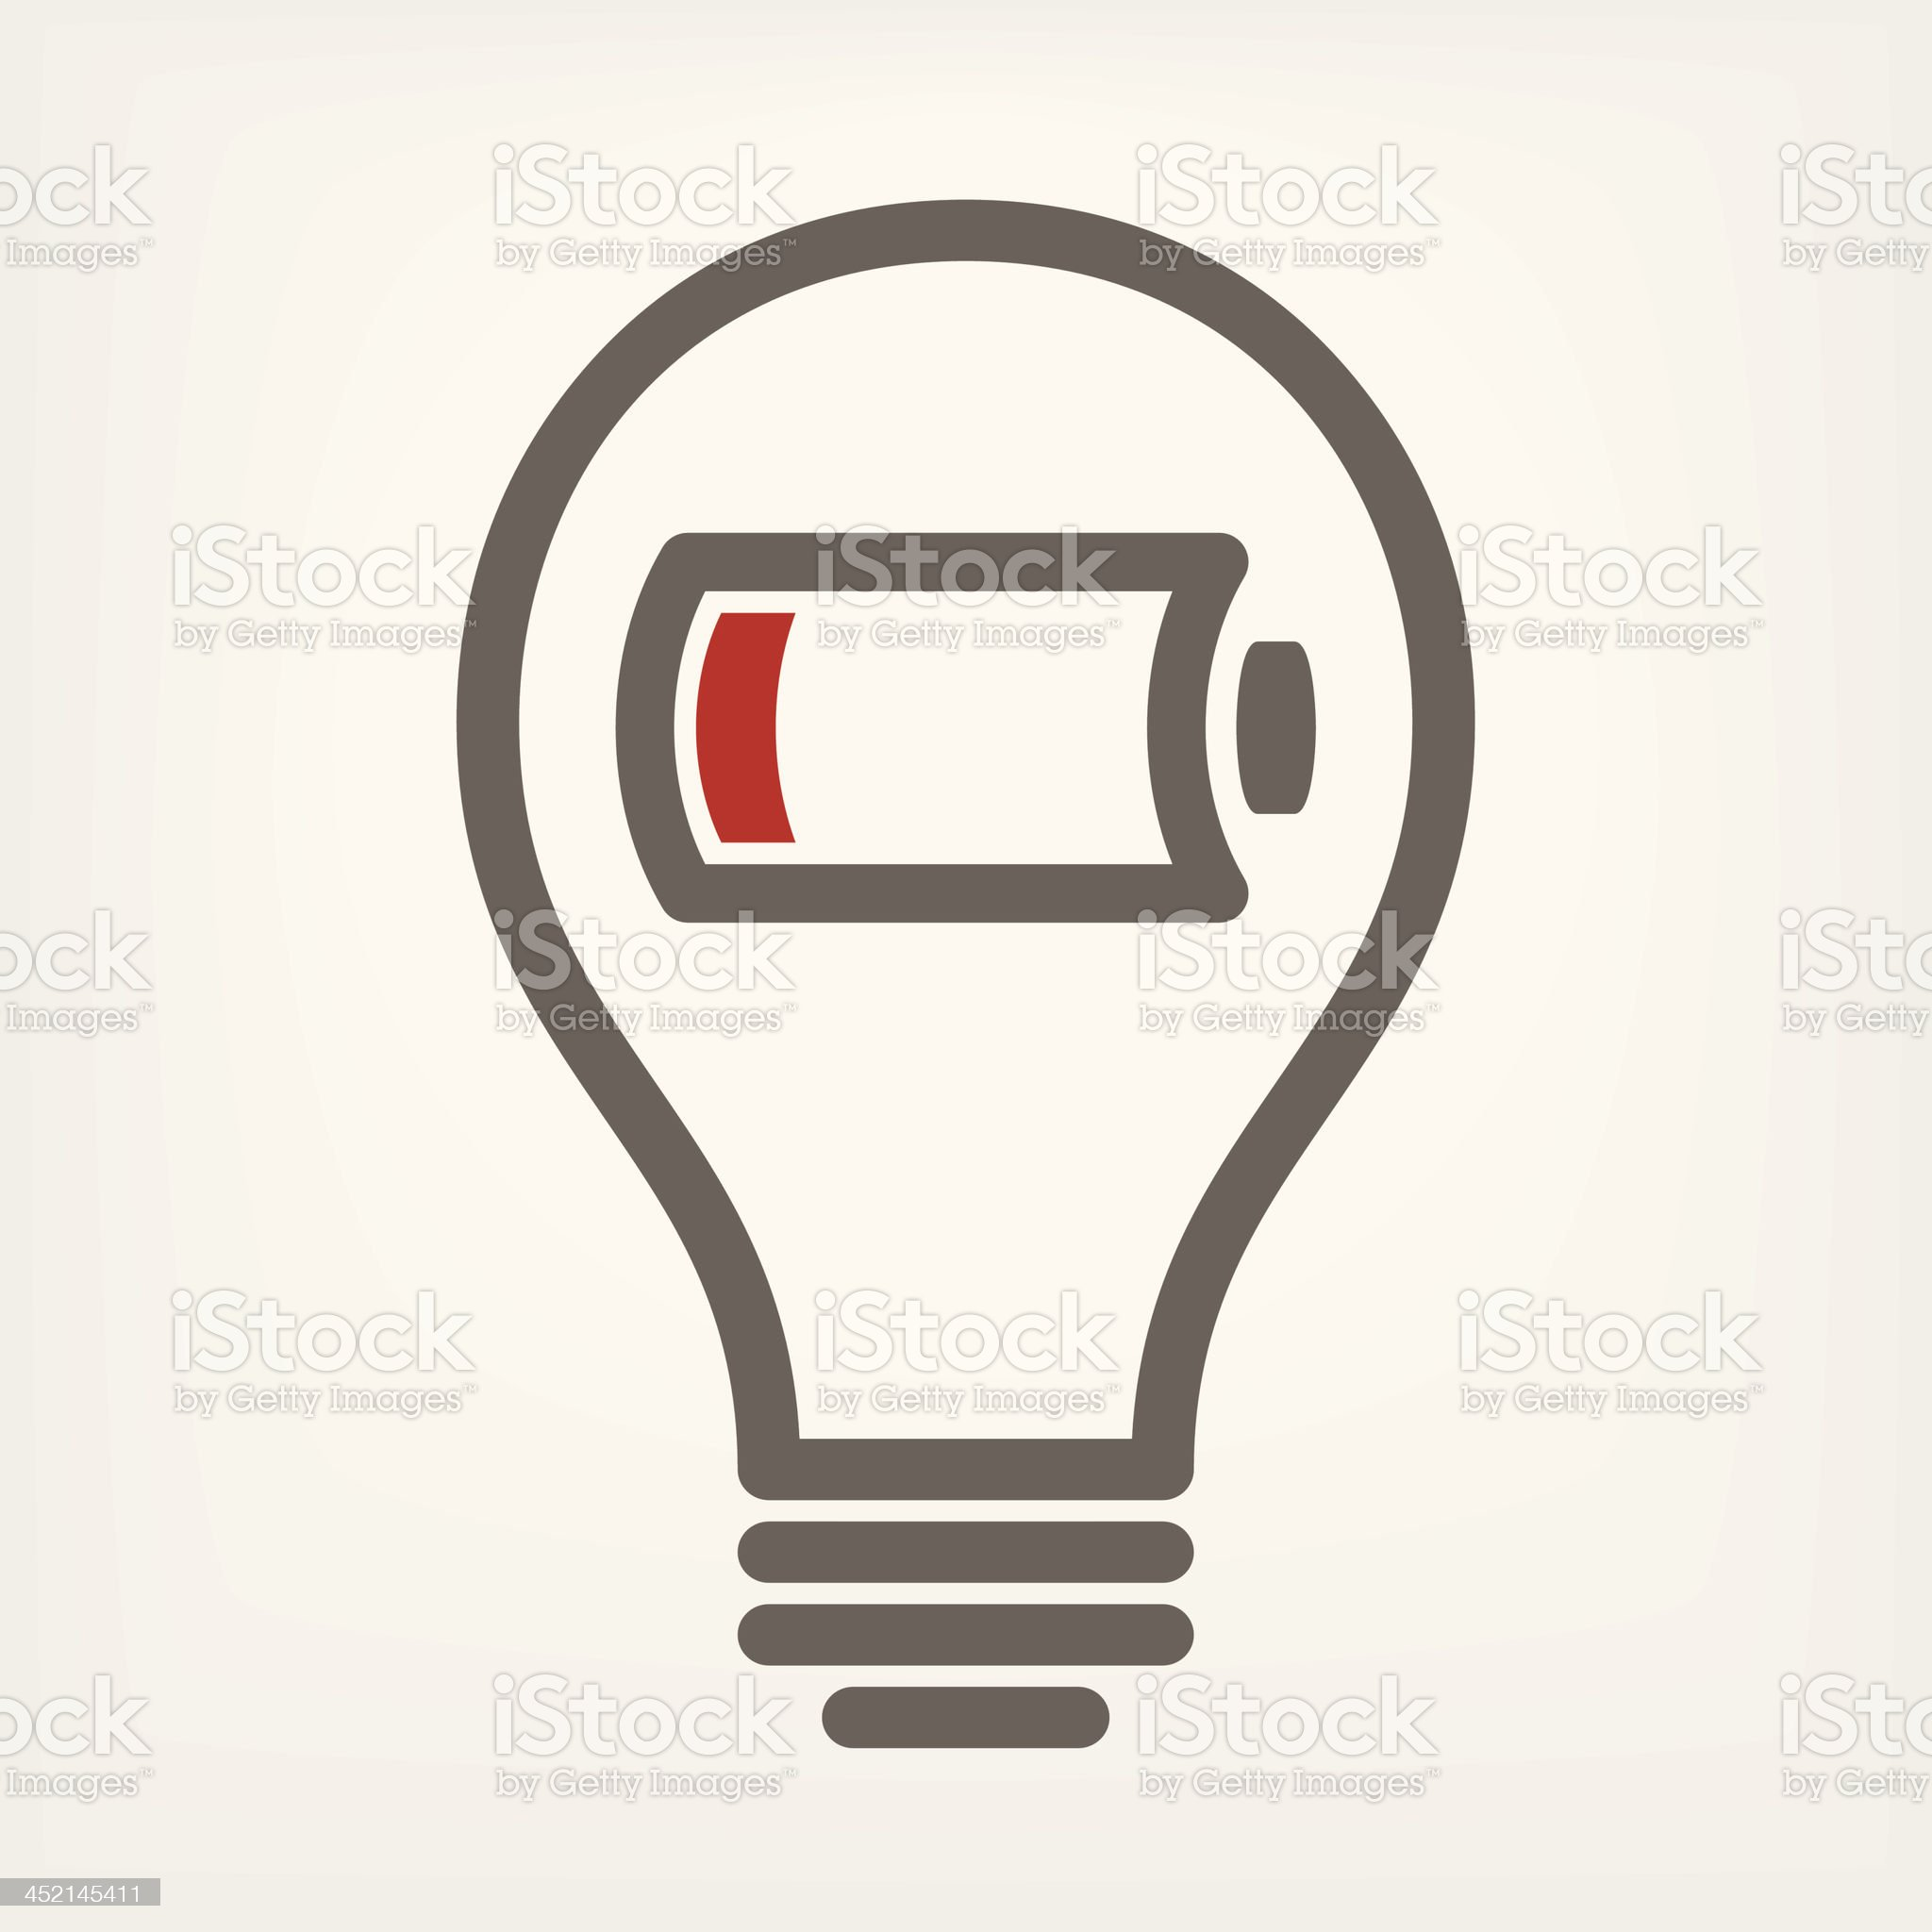 low battery sign royalty-free stock vector art